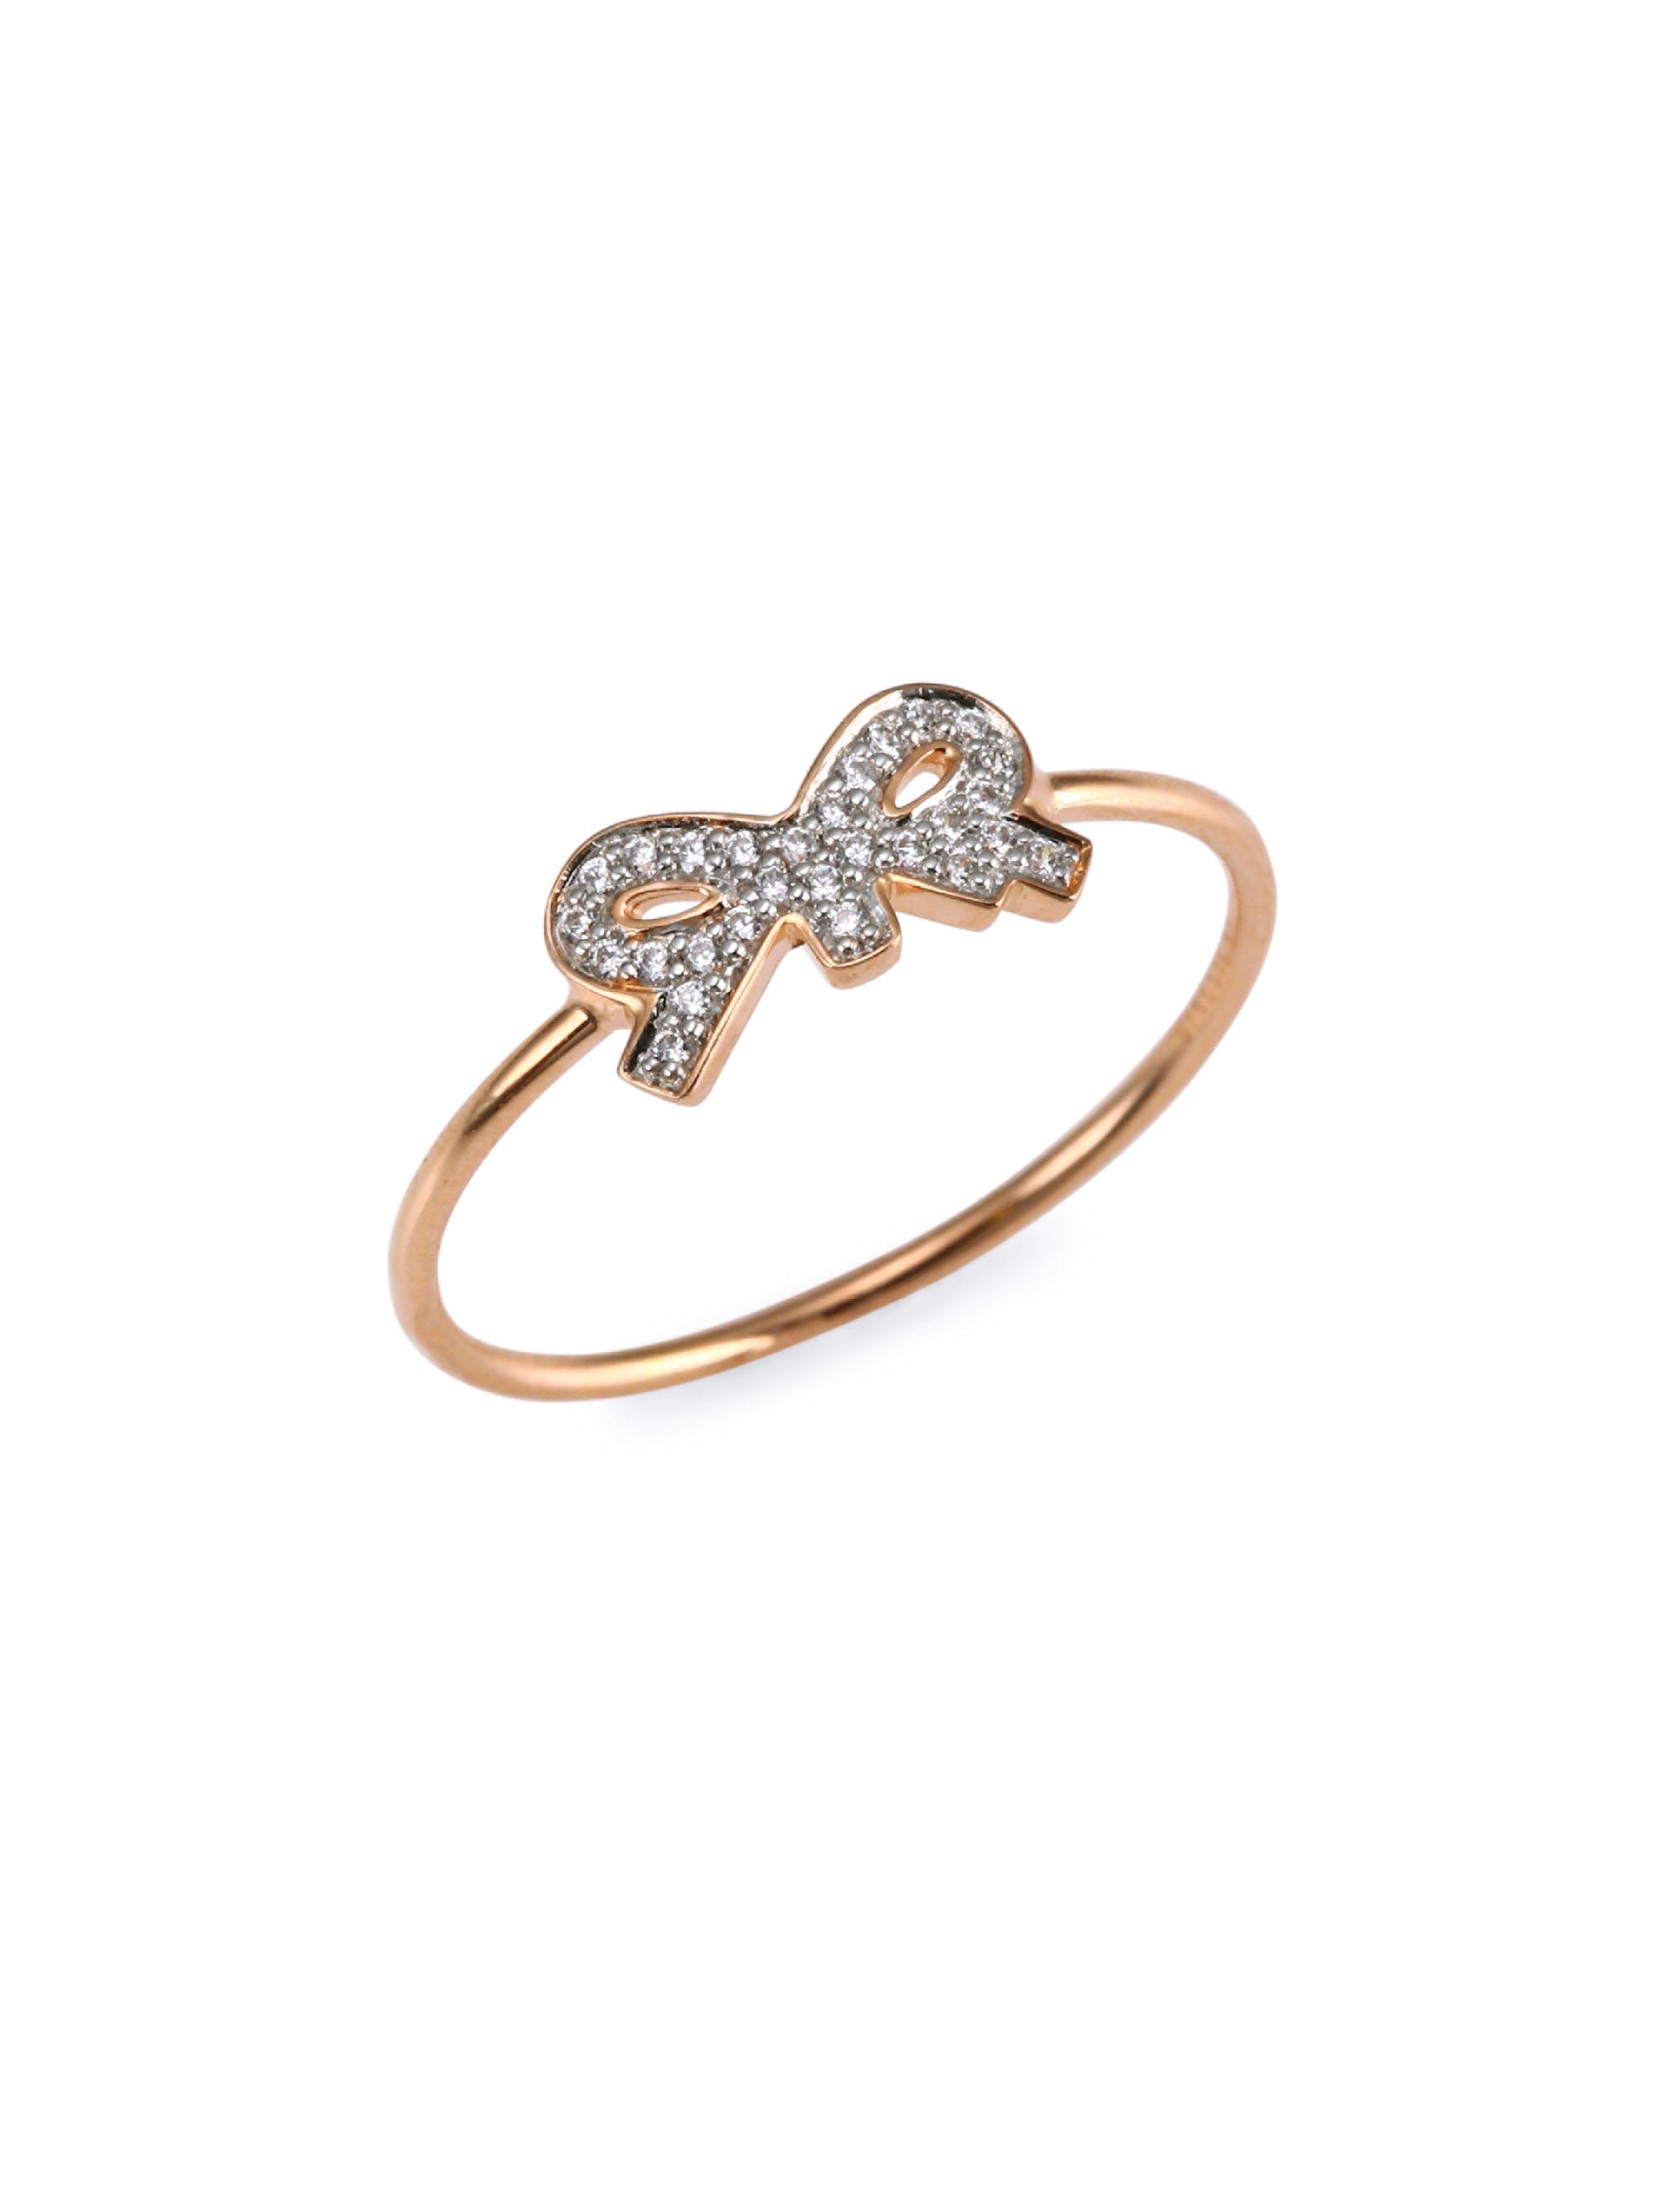 Ginette NY Tiny Diamond Heart Ring in 18K Rose Gold and Diamonds 6fZc8fMMf